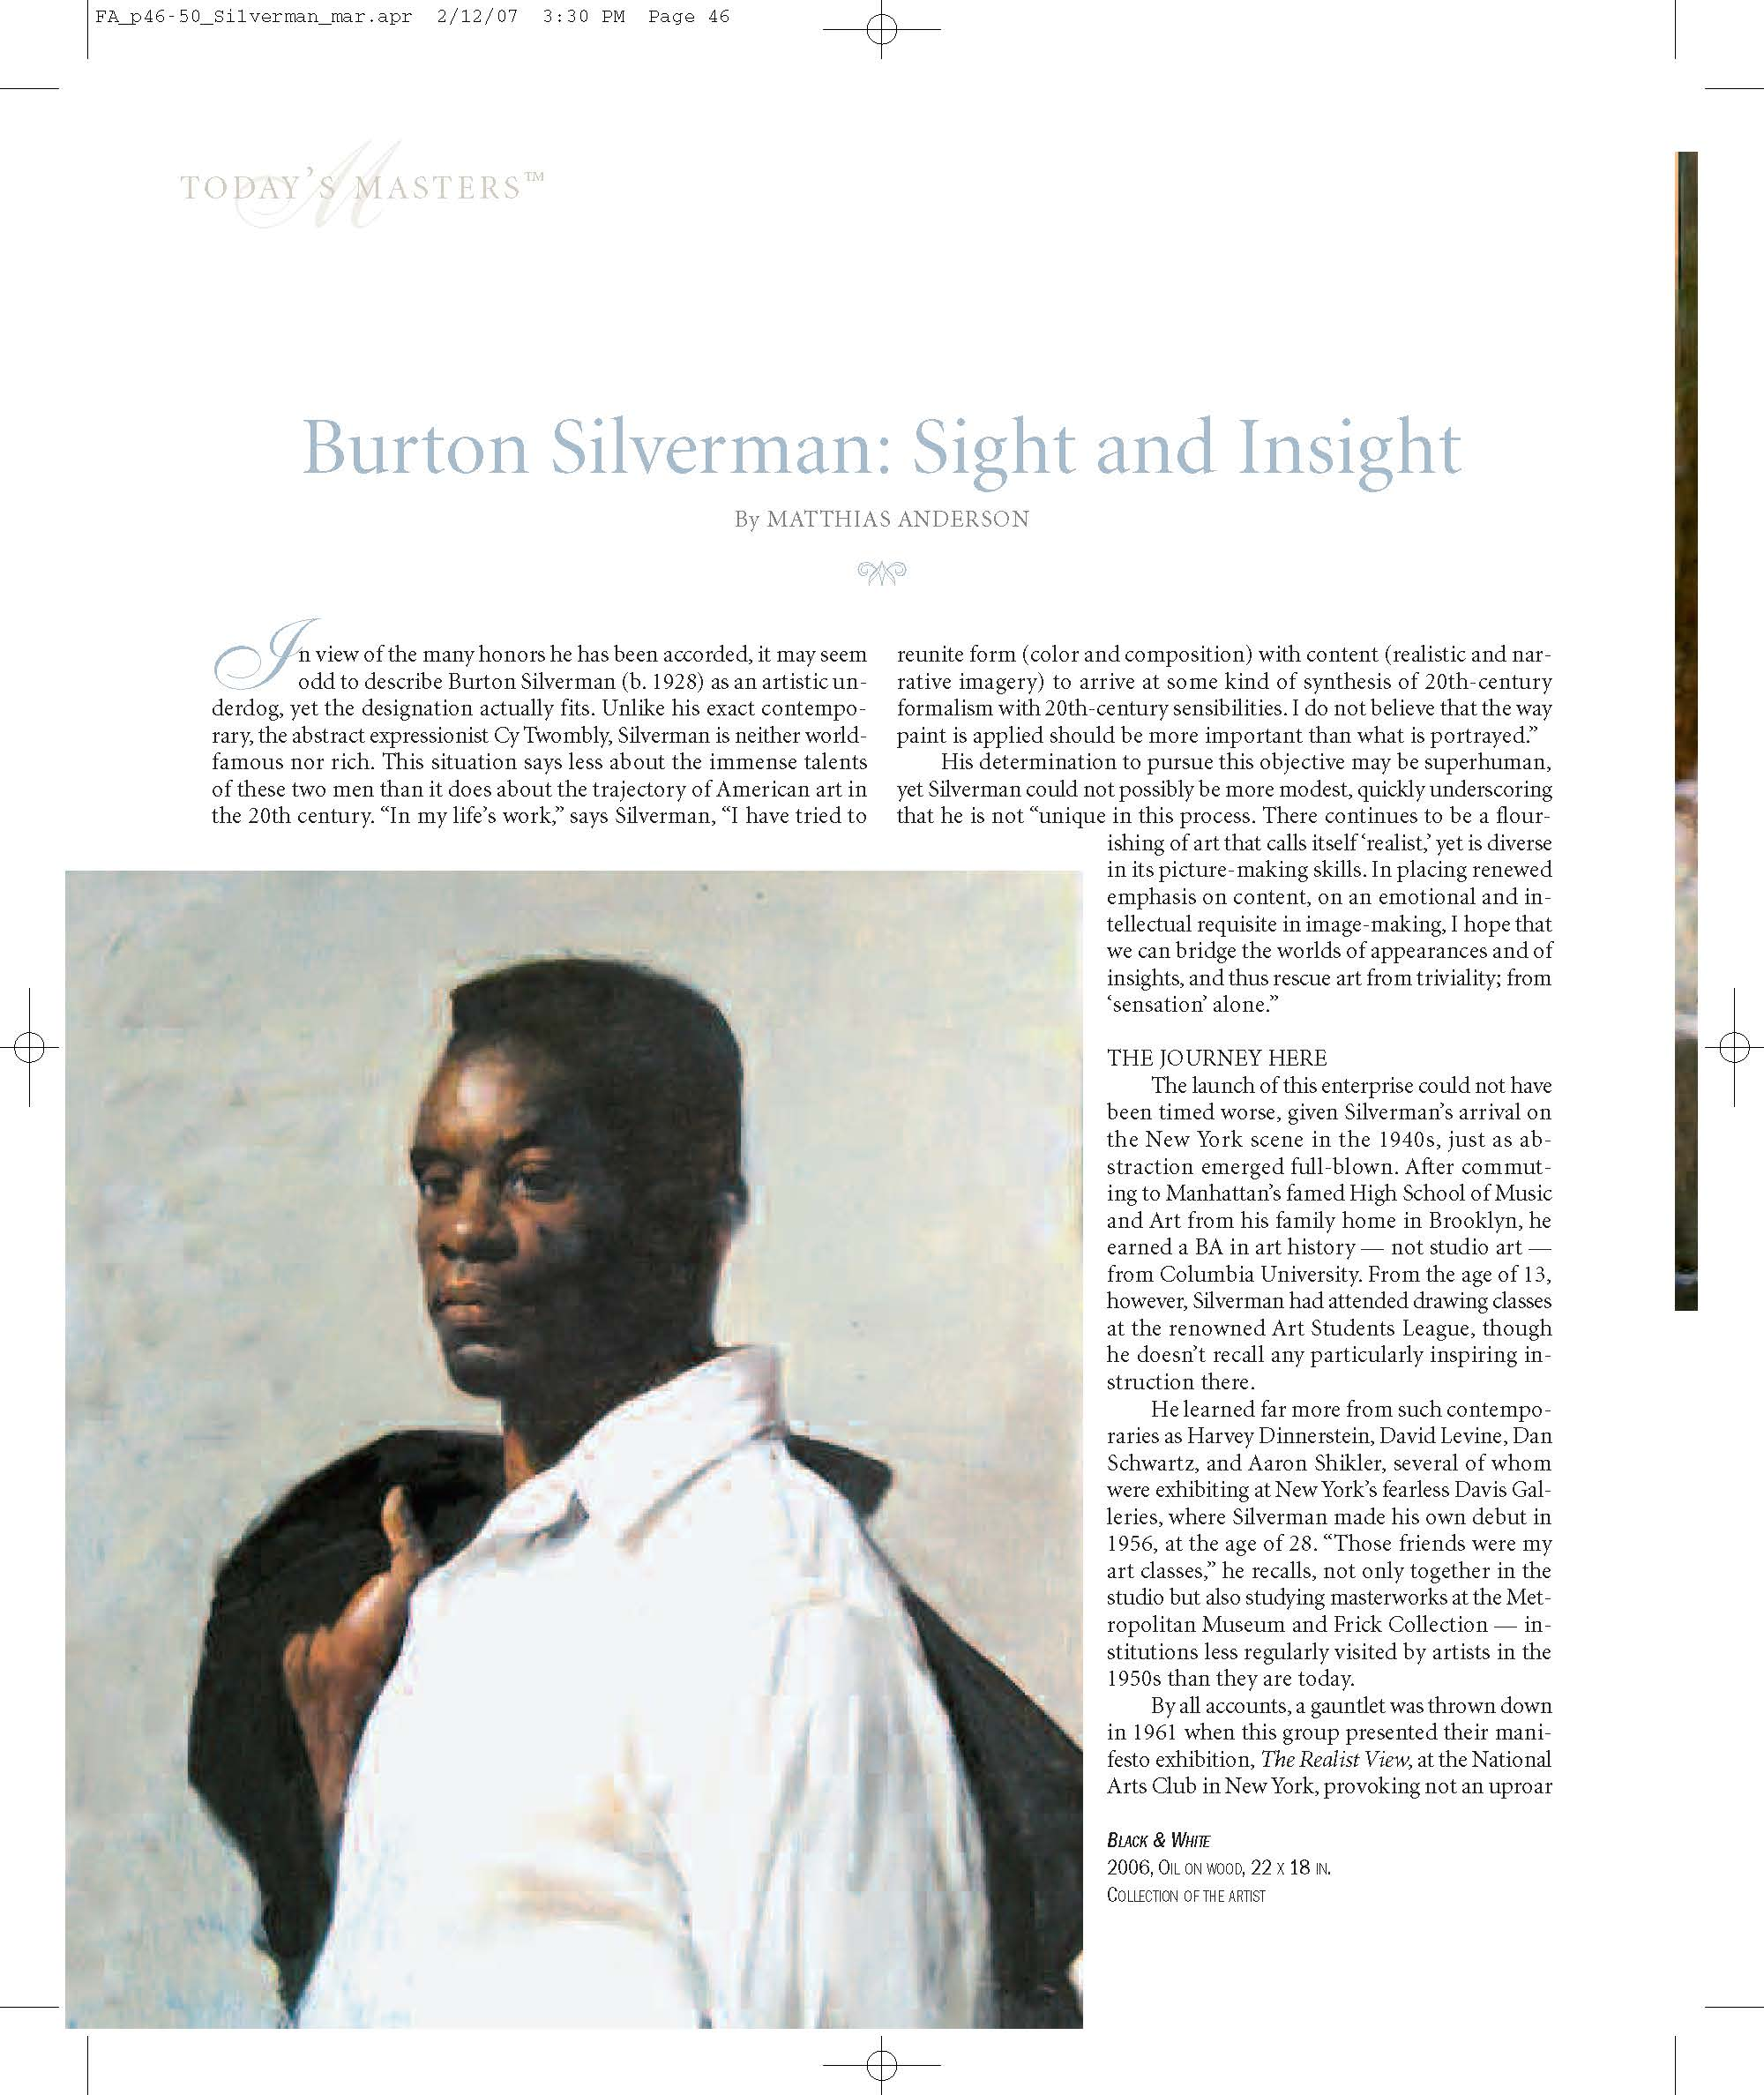 "in Fine Art Connoisseur , Feb , 2007  "" I n view of the many honors he has been accorded, it may seem odd to describe Burton Silverman (b. 1928) as an artistic underdog, yet the designation actually fits. Unlike his exact contemporary, the abstract expressionist Cy Twombly, Silverman is neither world famous nor rich. This situation says less about the immense talents of these two men than it does about the trajectory of American art in the 20th century.  He is ""particularly affected by images of the unspectacular and unheralded, people who have been left out of the loop. This often means portrait-like paintings in which the specific (person) can also become the paradigm for the many."" This impulse has produced a two-decade-long series in which Silverman has sought to reinvent the nude in art. Just as Manet approached Olympia, he has subverted the timeworn tradition of the studio nude, with its covert eroticism, into a more overtly erotic display of public nudity. The results include his frank studies of strippers, first in motion and later seated backstage, as well as distinctly unglamorous sunbathers lounging topless at the beach."""